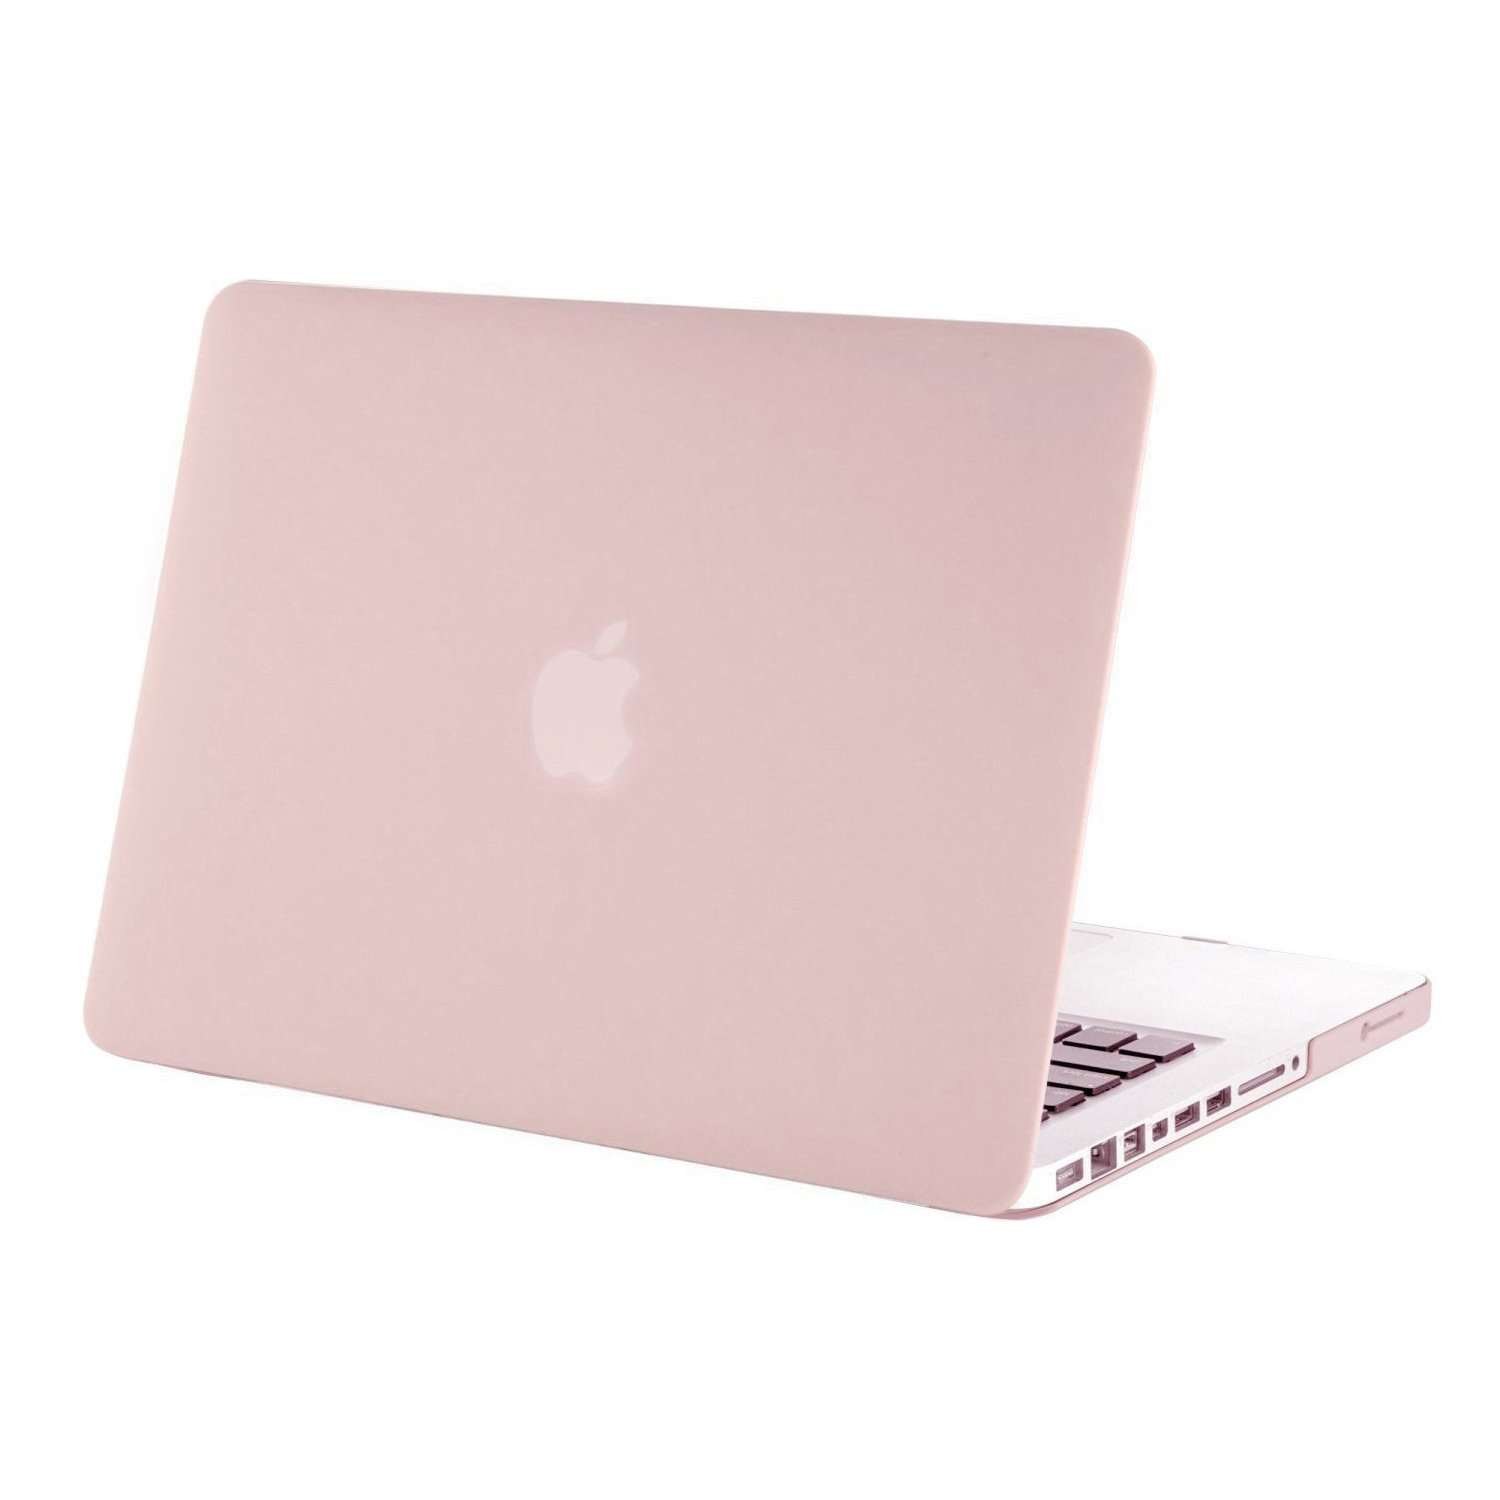 MOSISO Plastic Hard Shell Case Cover Only Compatible Old MacBook Pro 13 inch (A1278 CD-ROM), Release Early 2012/2011/2010/2009/2008, Rose Quartz by MOSISO (Image #1)